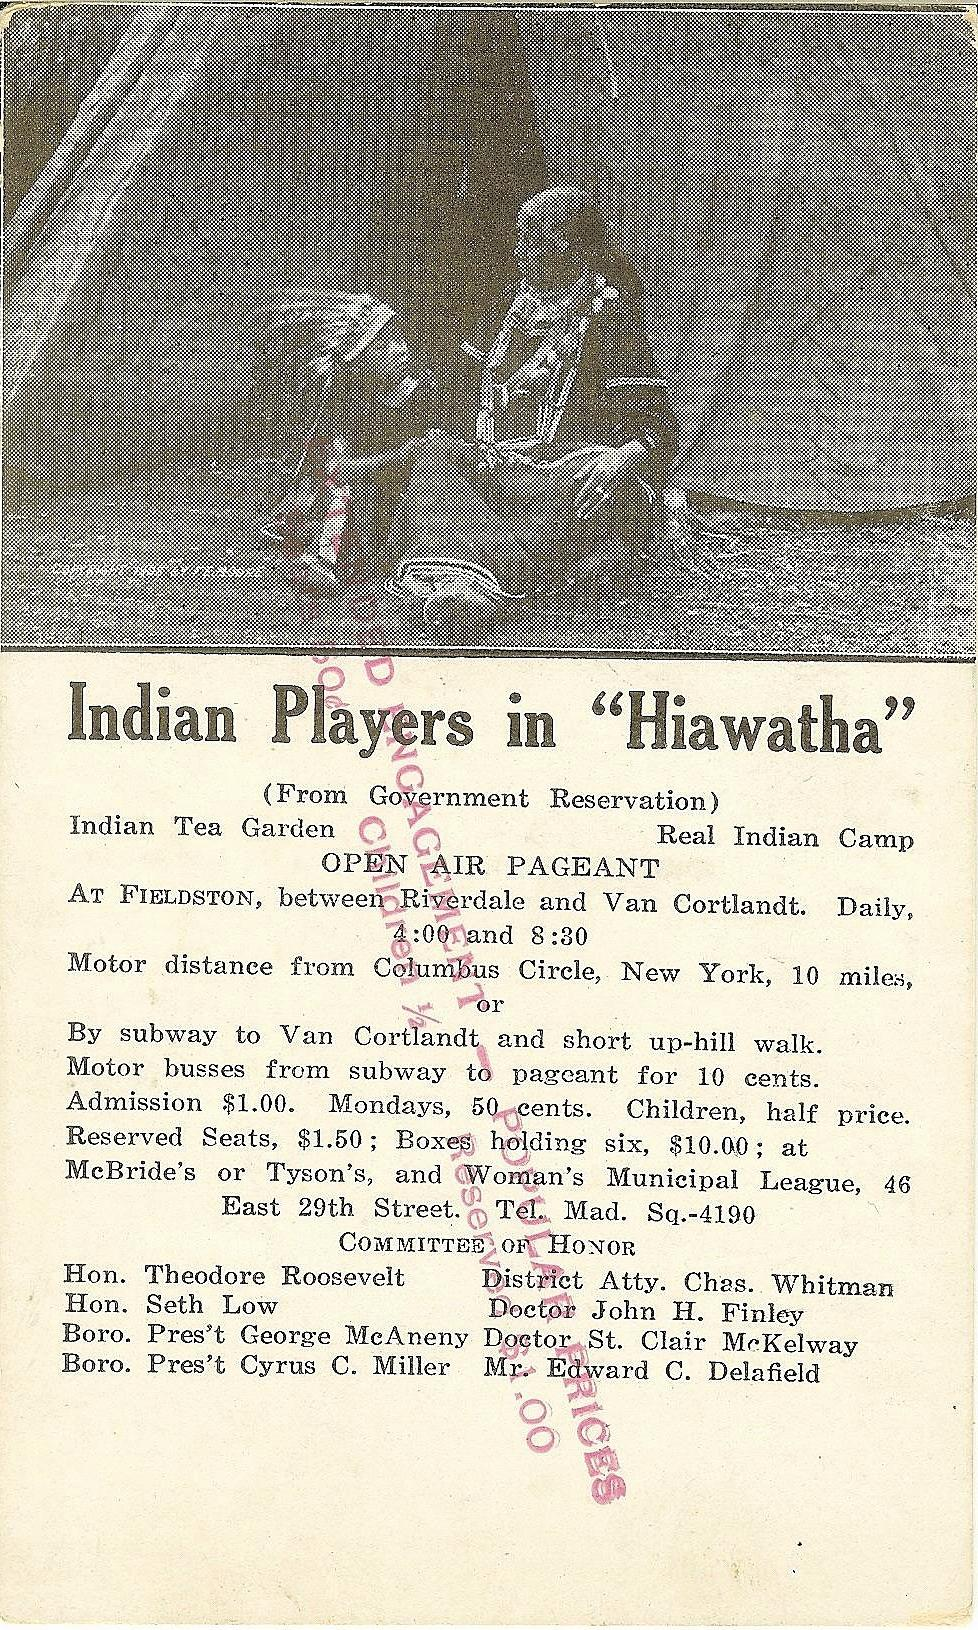 1913 postcard advertising Hiawatha